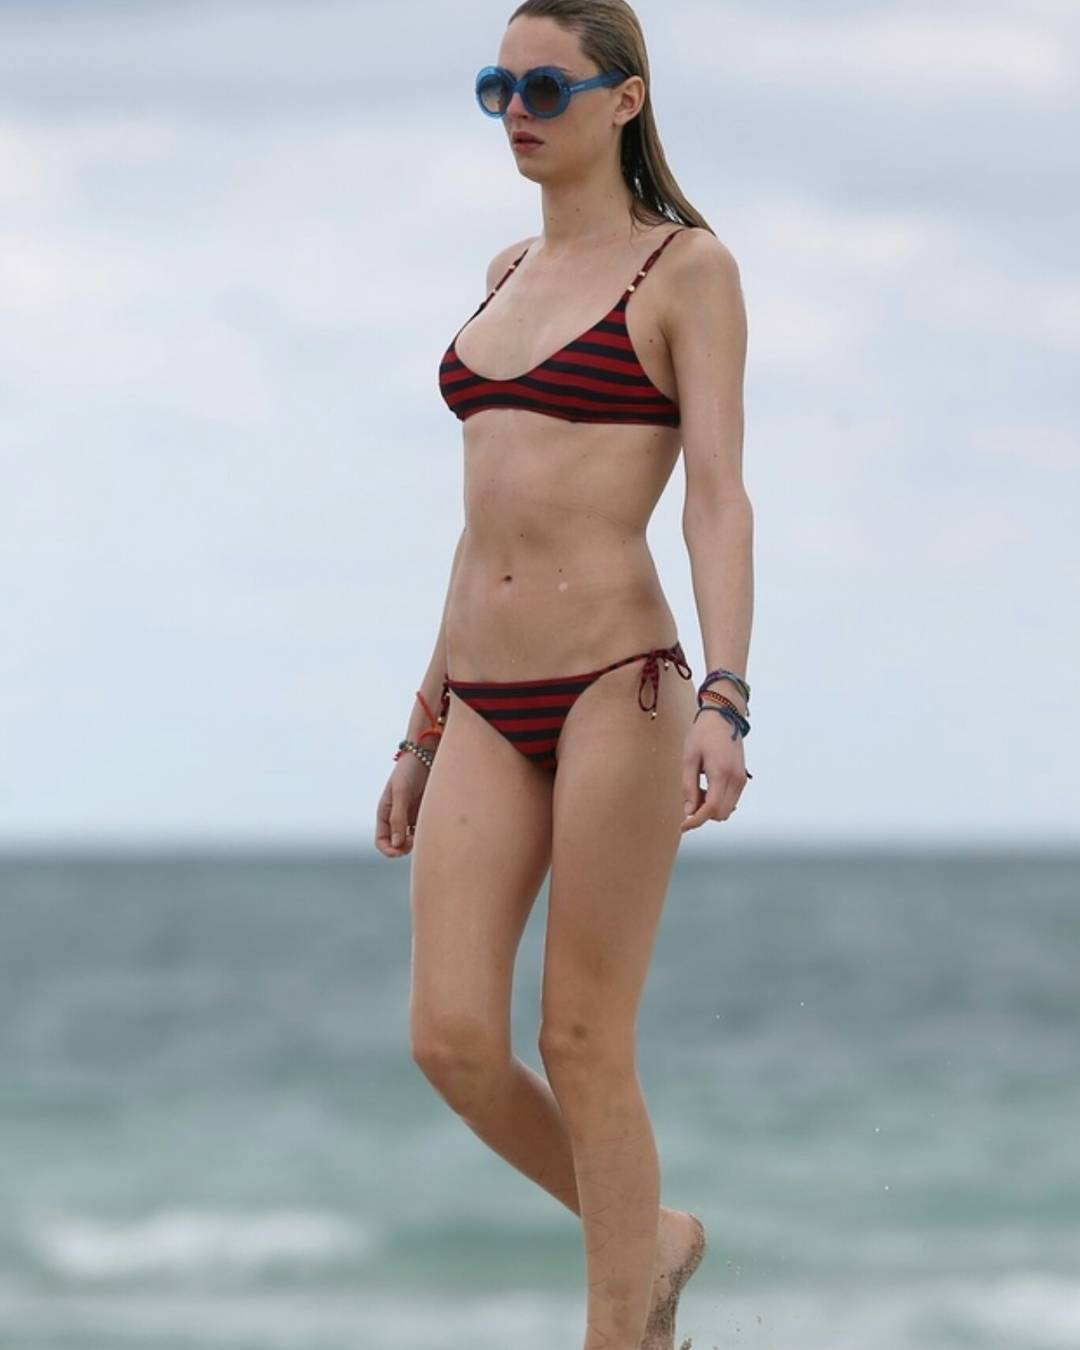 Transgender Bikini Model